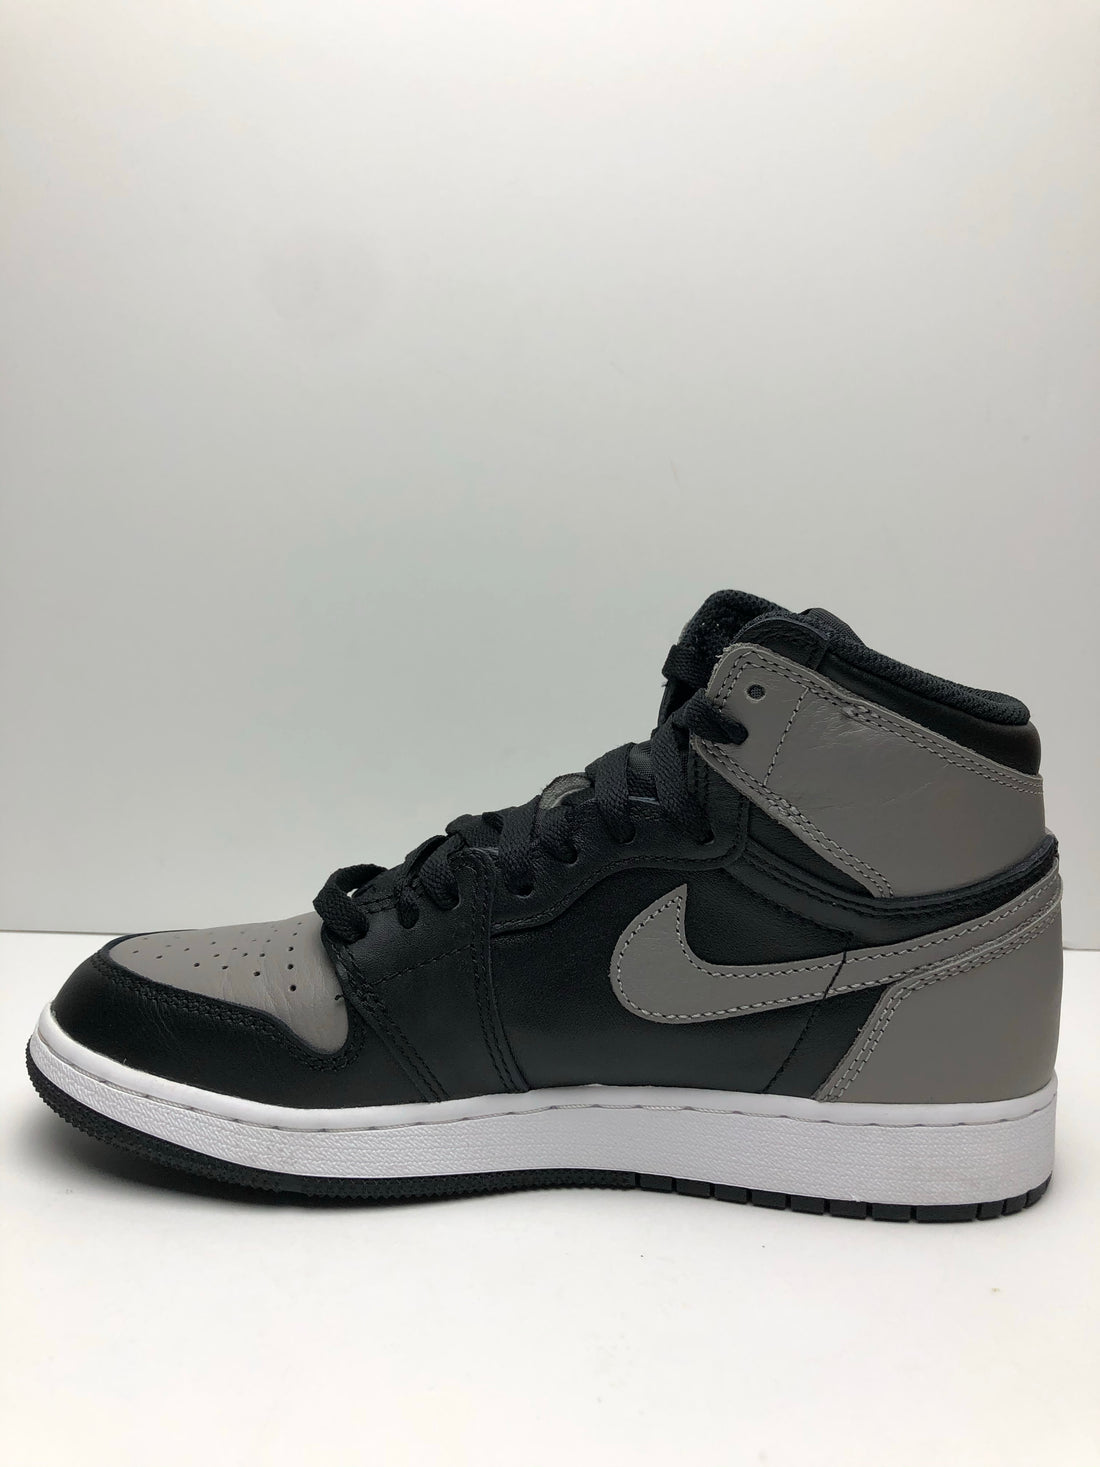 Jordan 1 Retro High Shadow 2018 (GS)